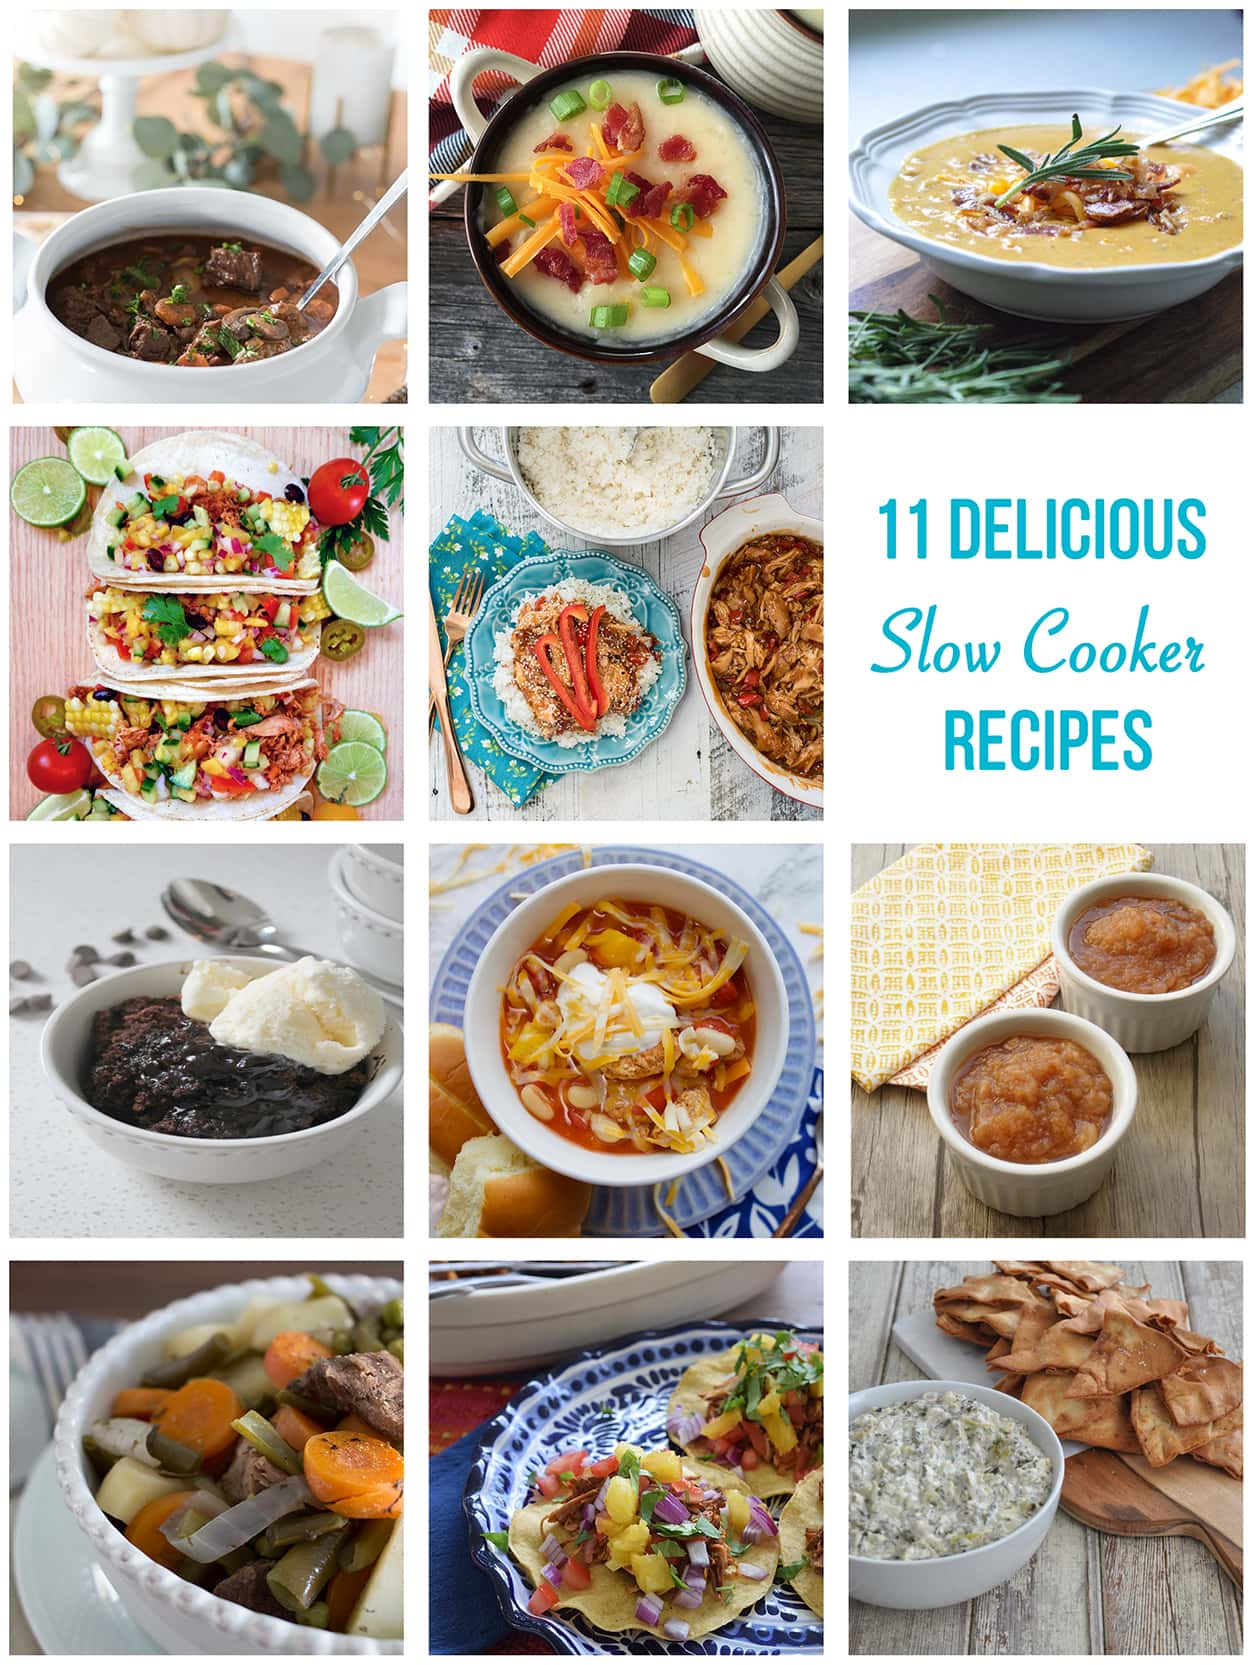 11 Slow Cooker Recipes to Make